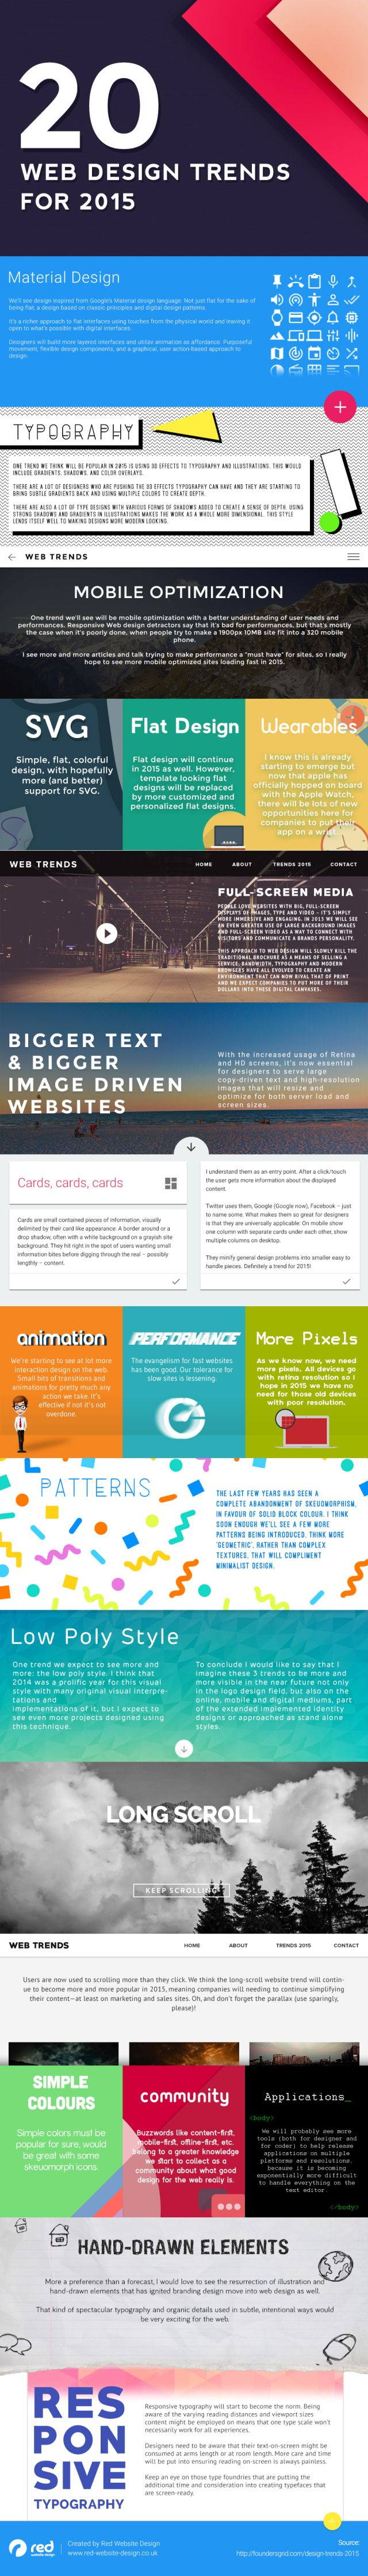 20 Web Design Trends You Can Expect to See in 2015 #Infographic via @redwebdesign blog